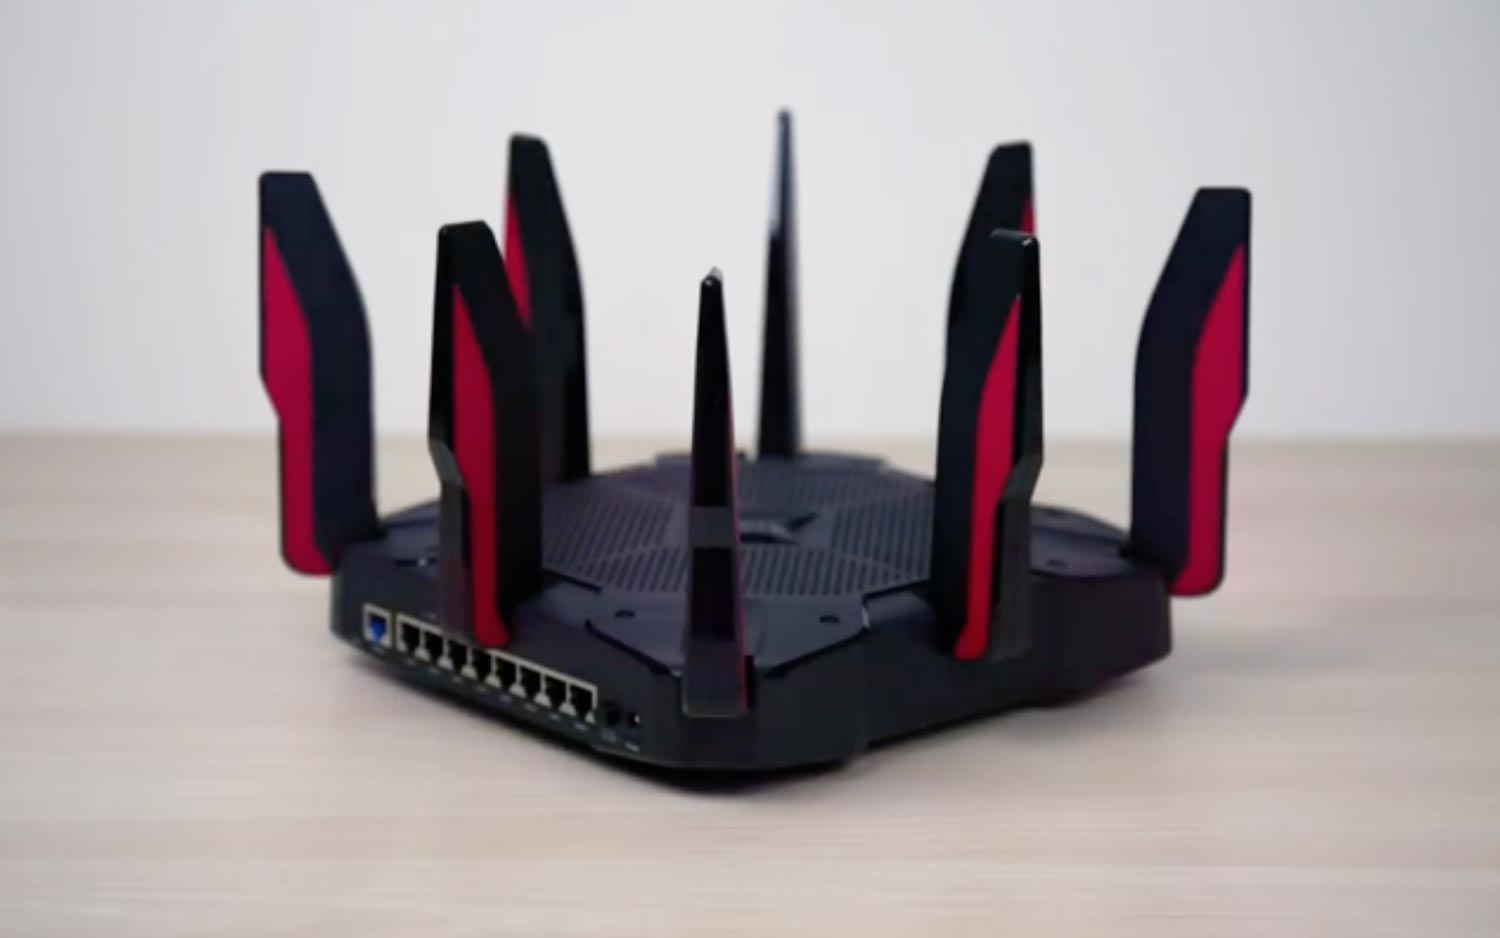 TP-Link Archer C5400X – Full Review and Benchmarks | Tom's Guide